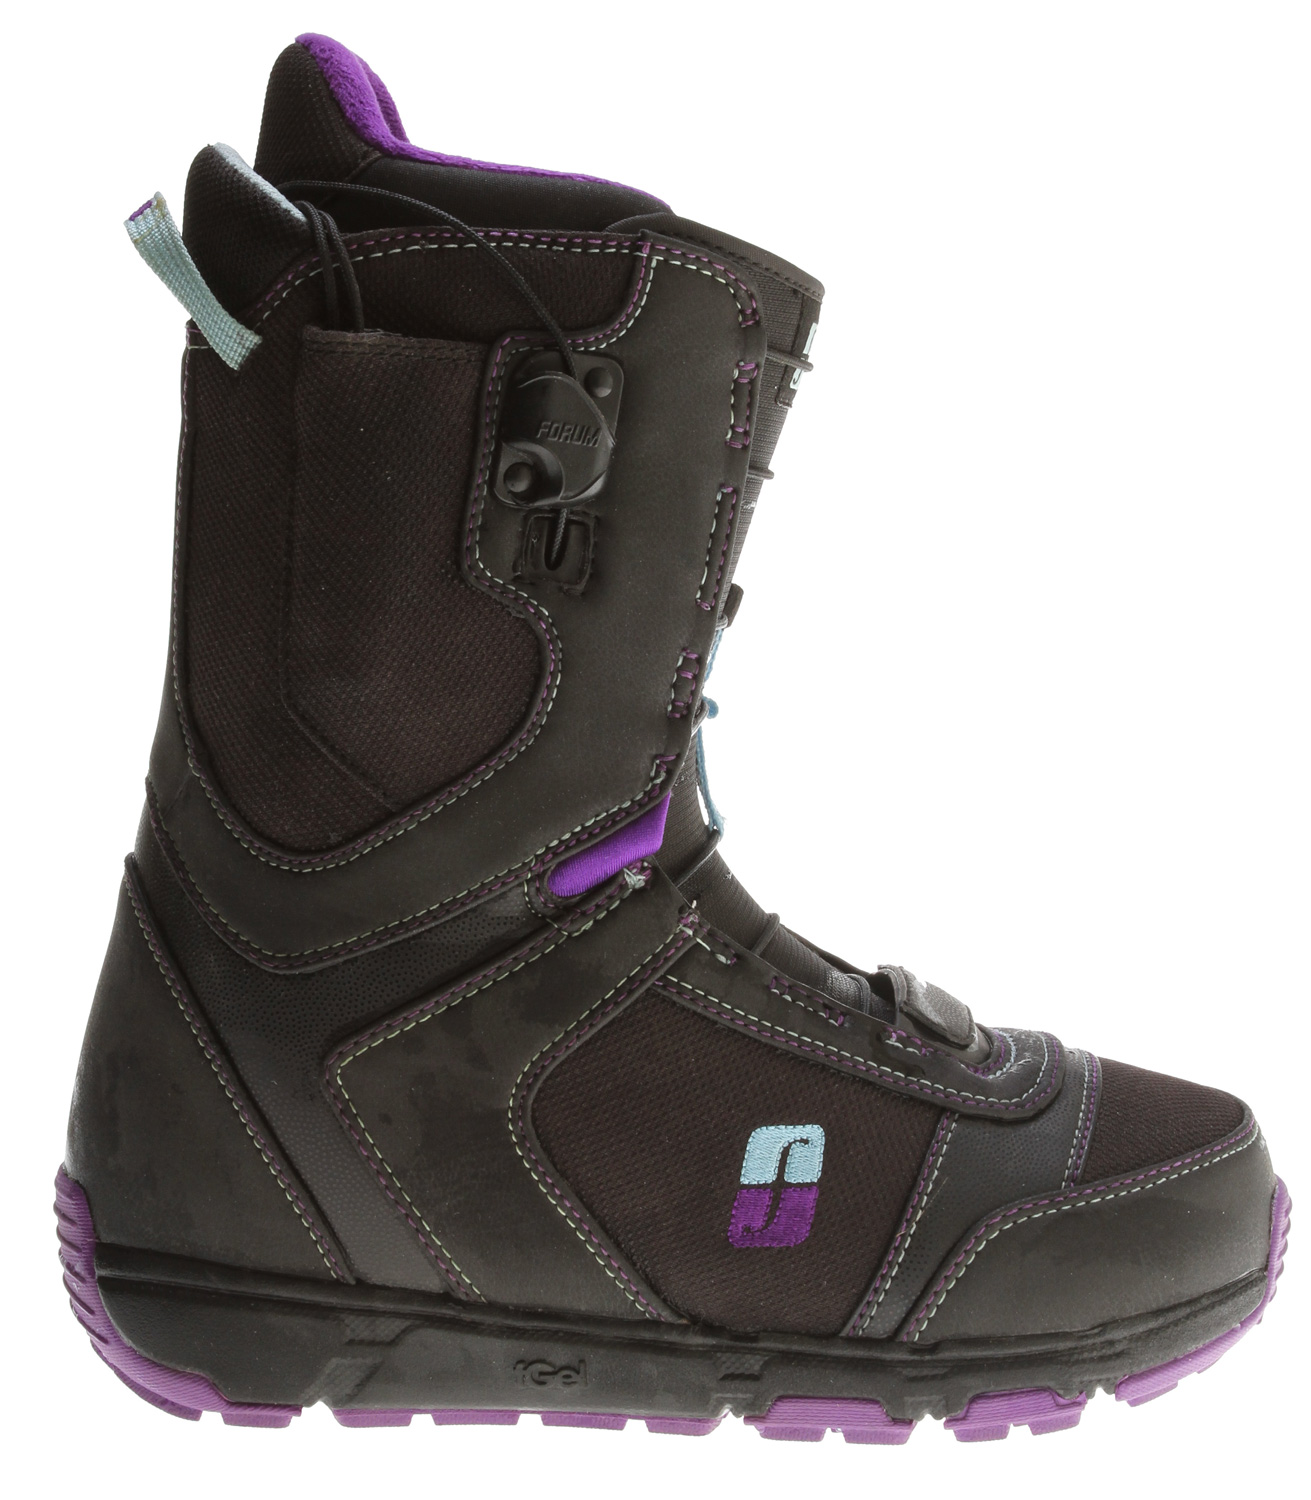 Snowboard Fits like a Glove. The Glove is an amazingly comfortable, high-performance women's boot. The Good Vibes outsole allows women rippers to get the subtle flex and feel of the terrain underfoot while still offering an insane amount of shock absorption, thanks to the encapsulated FGel pockets. The comfy Level 2 liner and footbed will wrap and support your foot the same from day one to day sixty-regardless of how hard you charge it.Key Features of the Forum Glove Snowboard Boots: Liner: Level 2 liner Comfort and Grip: Good Vibes outsole with FGel cushioning Footbed: Level 2 footbed Lacing: Speed Zone New Forever Fit construction Gold Cuff Links Flex: 4 - $129.95